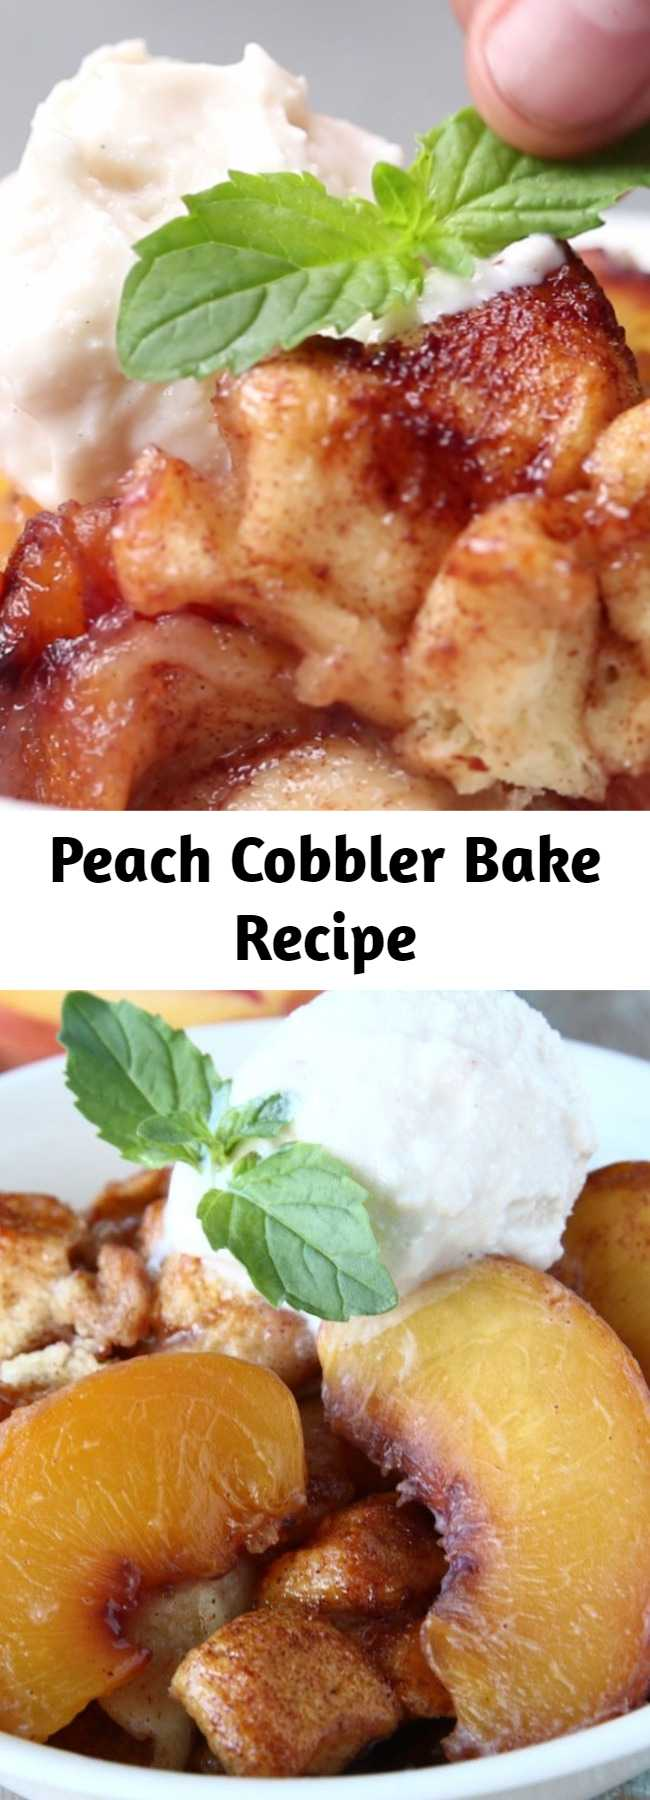 Peach Cobbler Bake Recipe - This Peach Cobbler Cake Is Where Your Taste Buds Need To Be